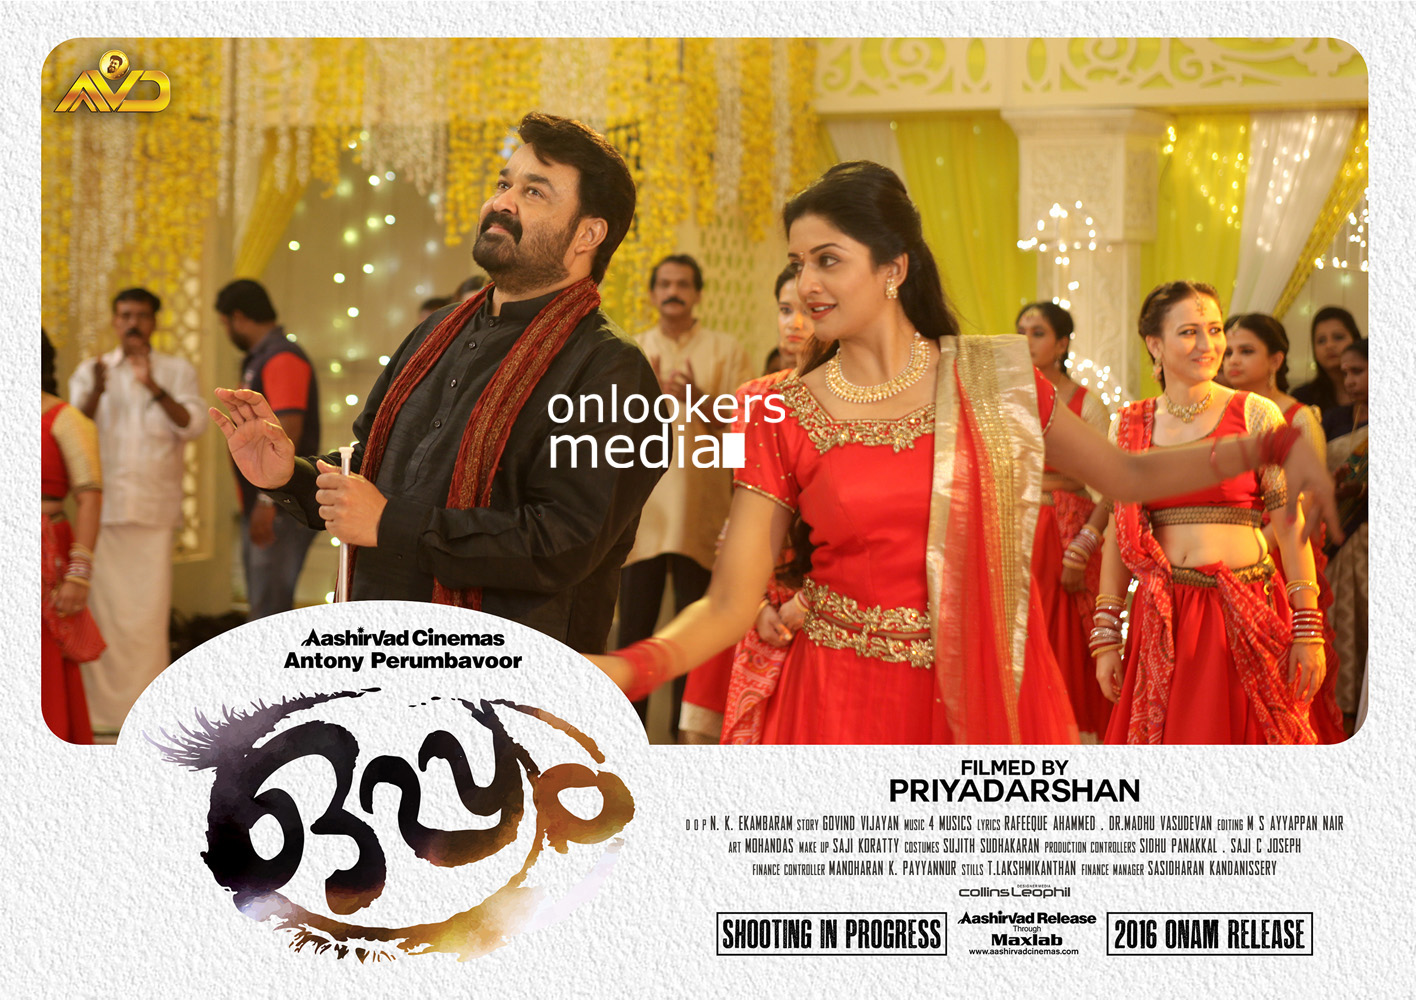 Oppam Stills, mohanlal in Oppam, mohanlal stylish, mohanlal 2016 movies, mohanlal priyadarshan movie, Oppam malayalam movie stills